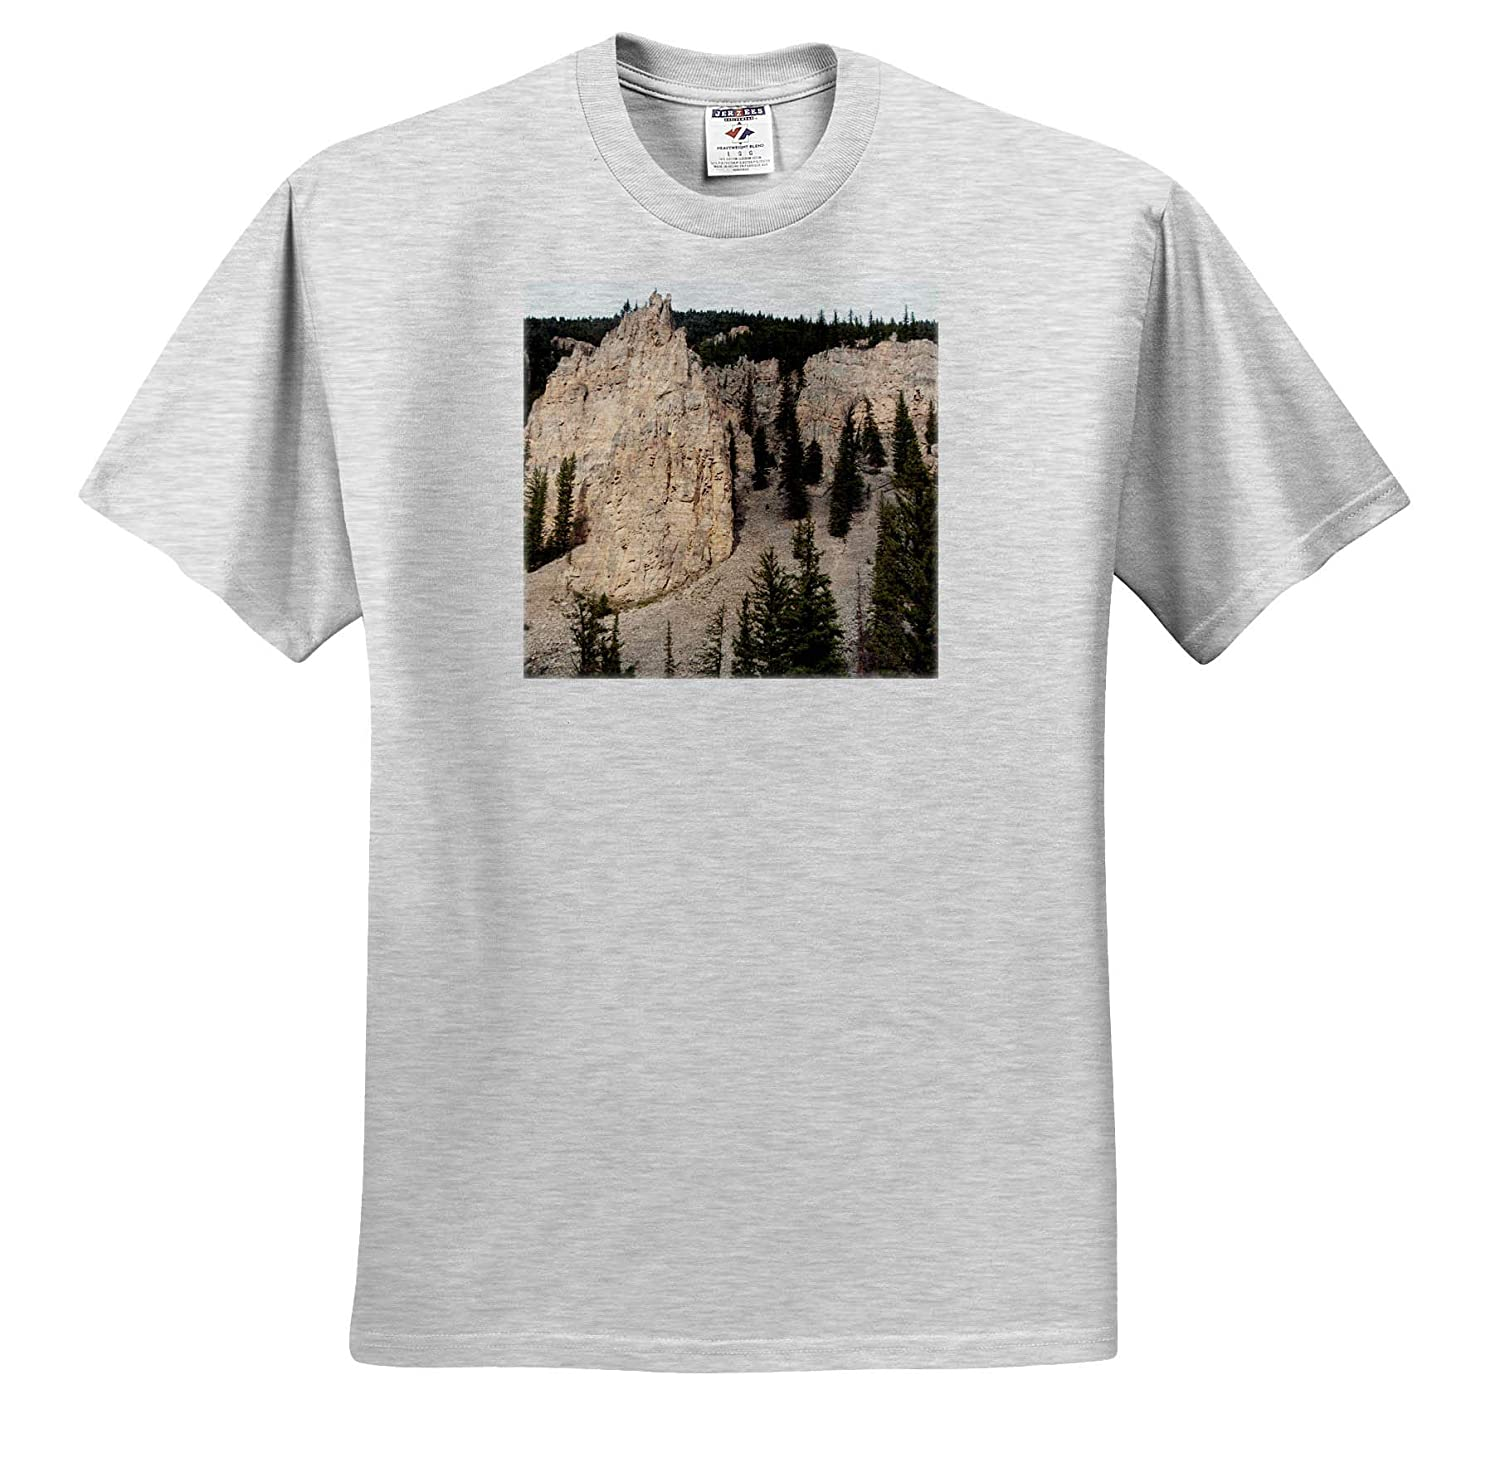 A White Hill with Green Trees in Yellowstone National Park 3dRose Jos Fauxtographee Yellowstone Scenery White T-Shirts